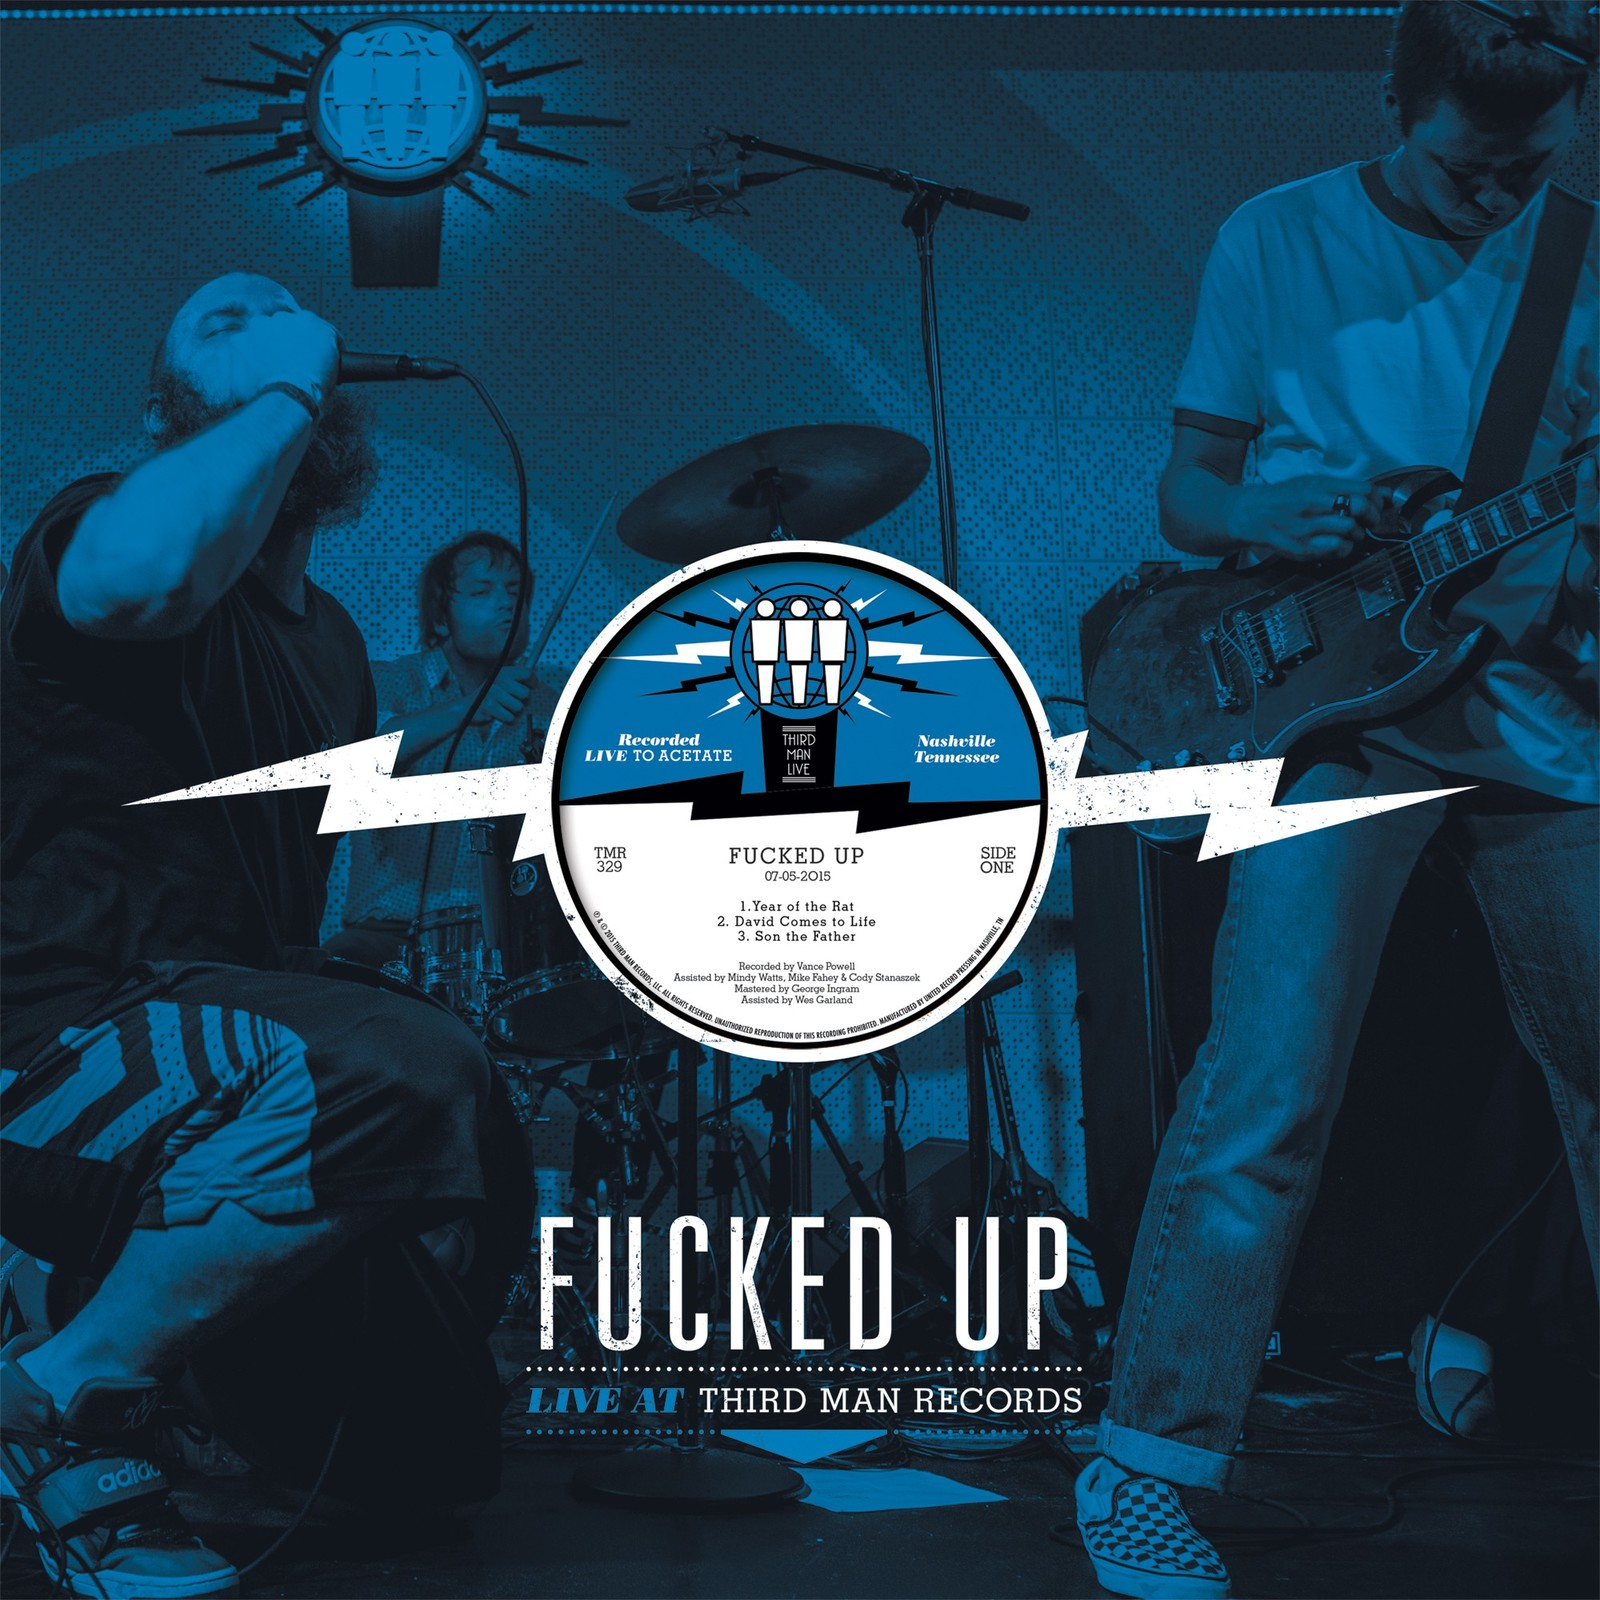 Live At Third Man by Fucked Up image